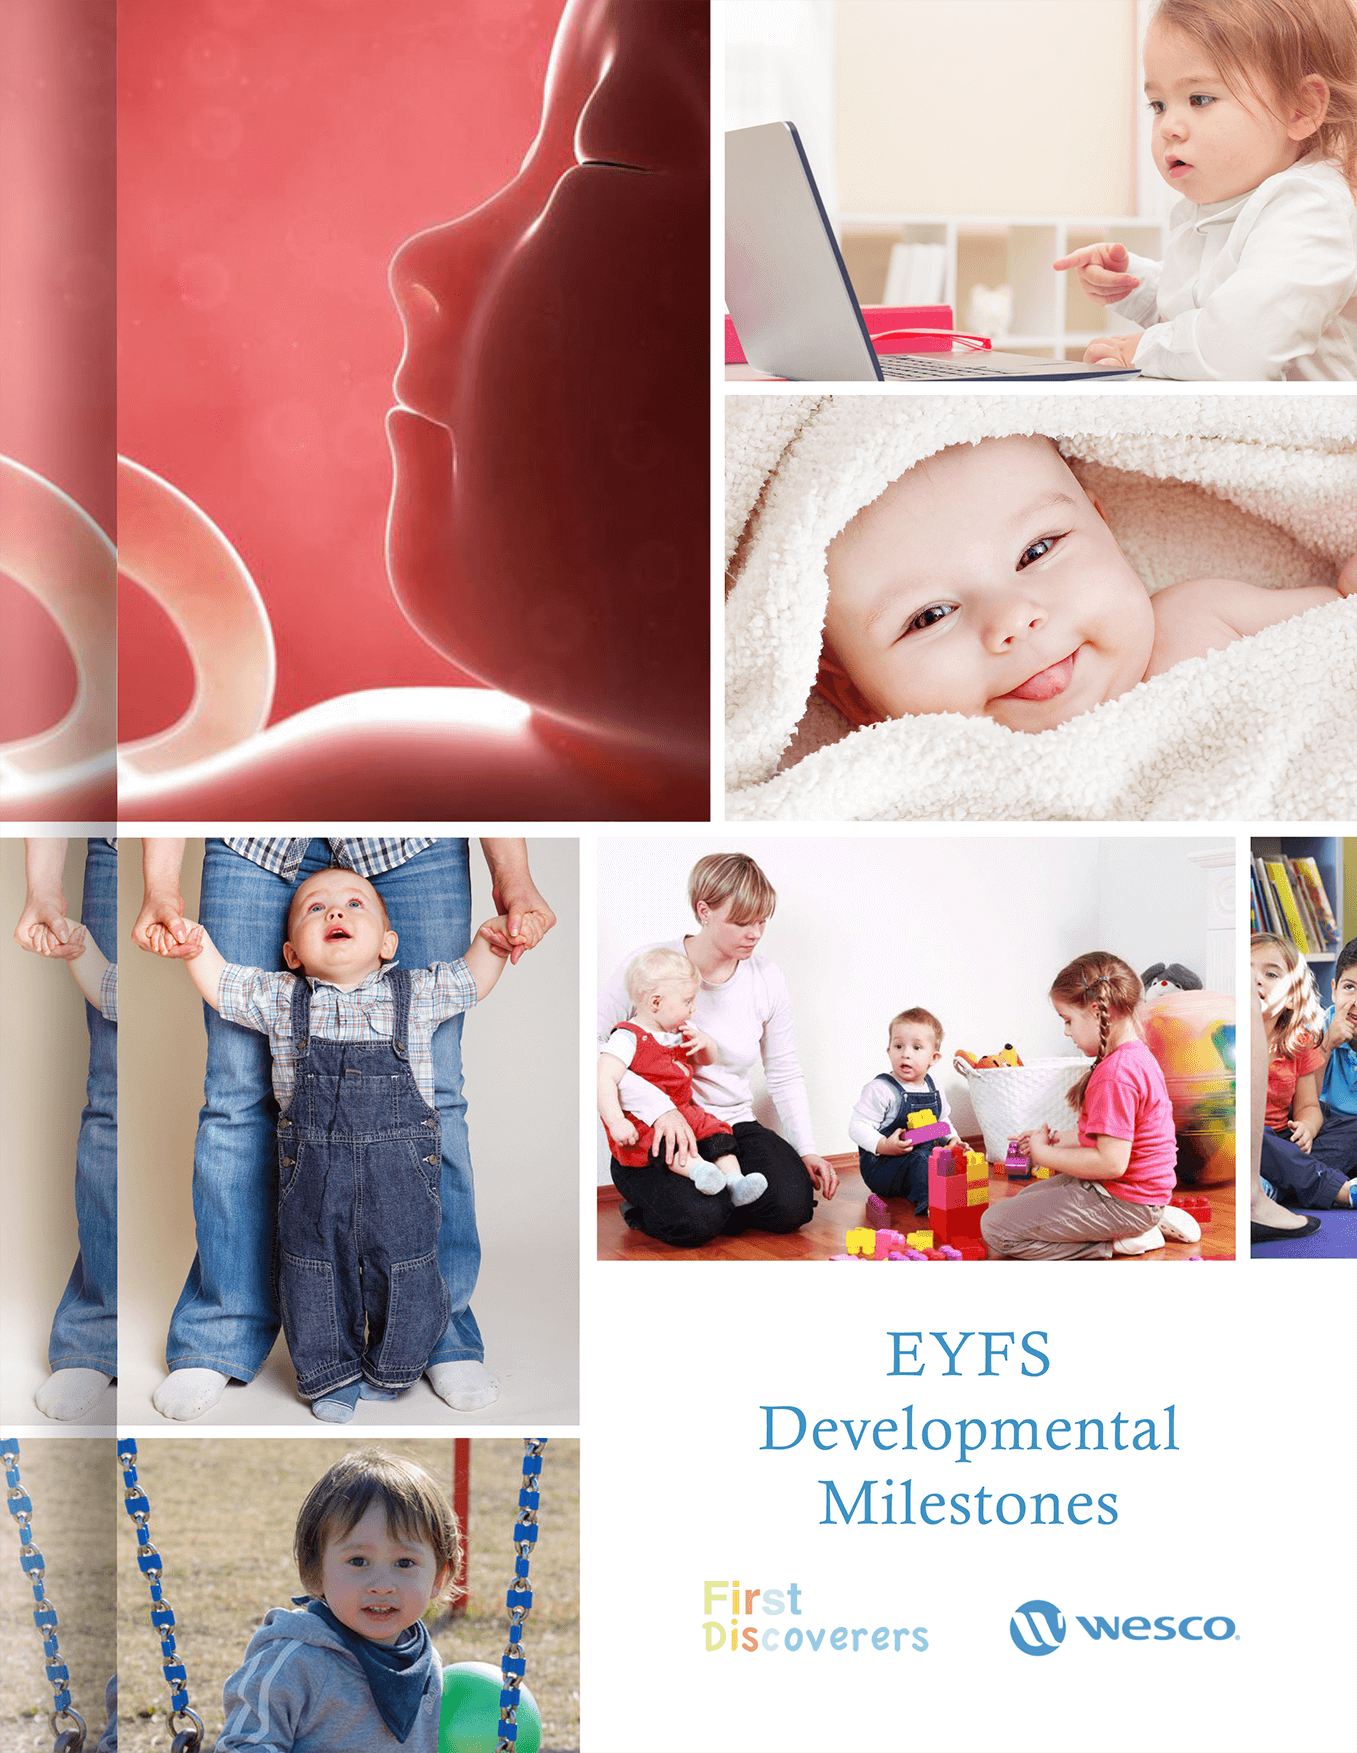 EYFS Developmental Milestones